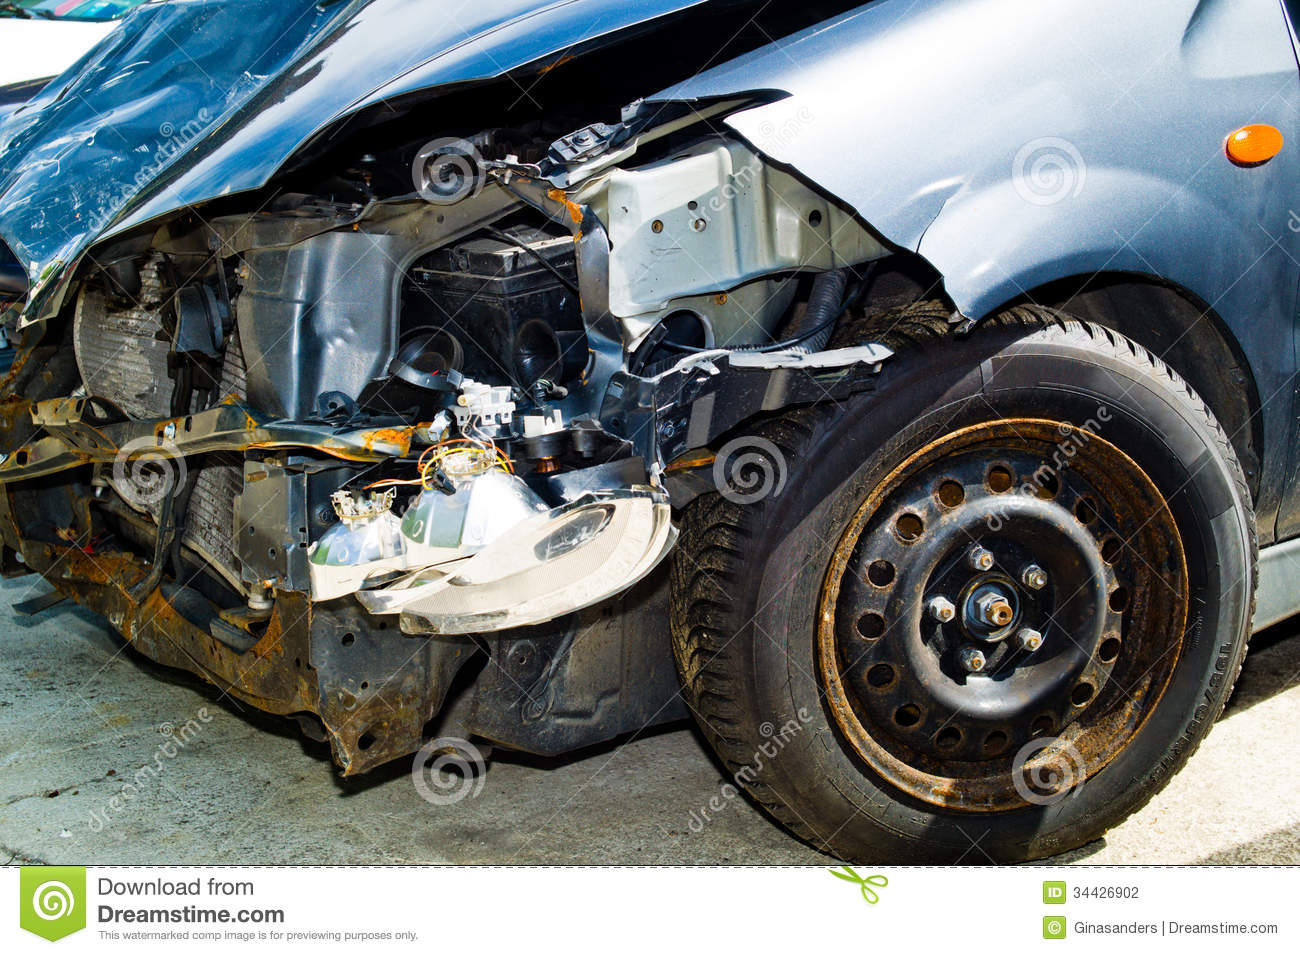 Collision Auto Repair >> Car With Body Damage After An Accident Stock Photo - Image: 34426902